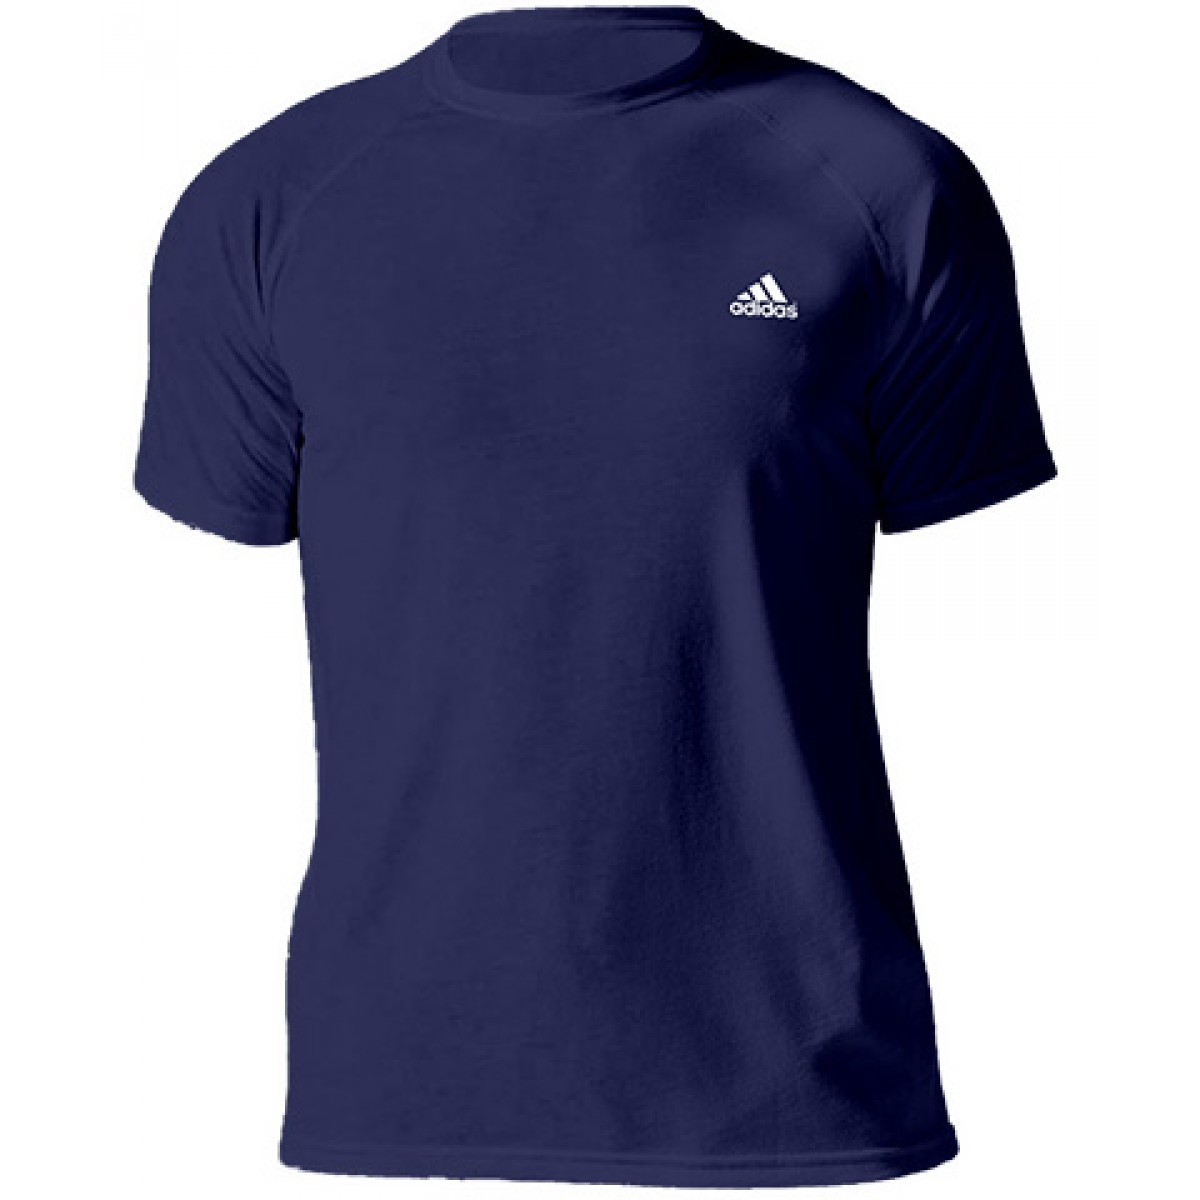 Adidas Embroidered Logo Essential Crew Neck T-shirt-Navy-M